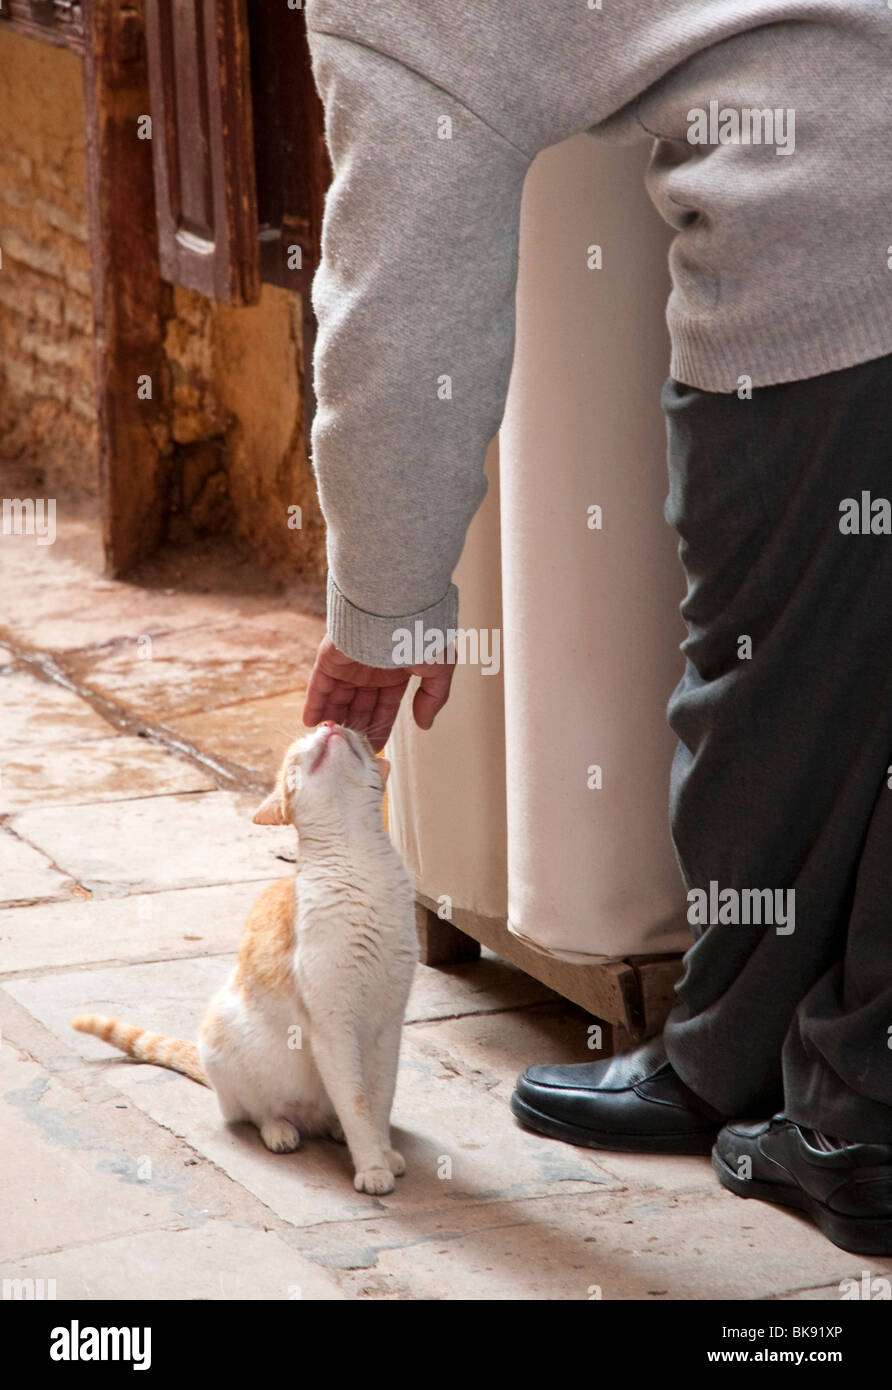 Shopkeeper petting a cat in Fes, Morocco - Stock Image